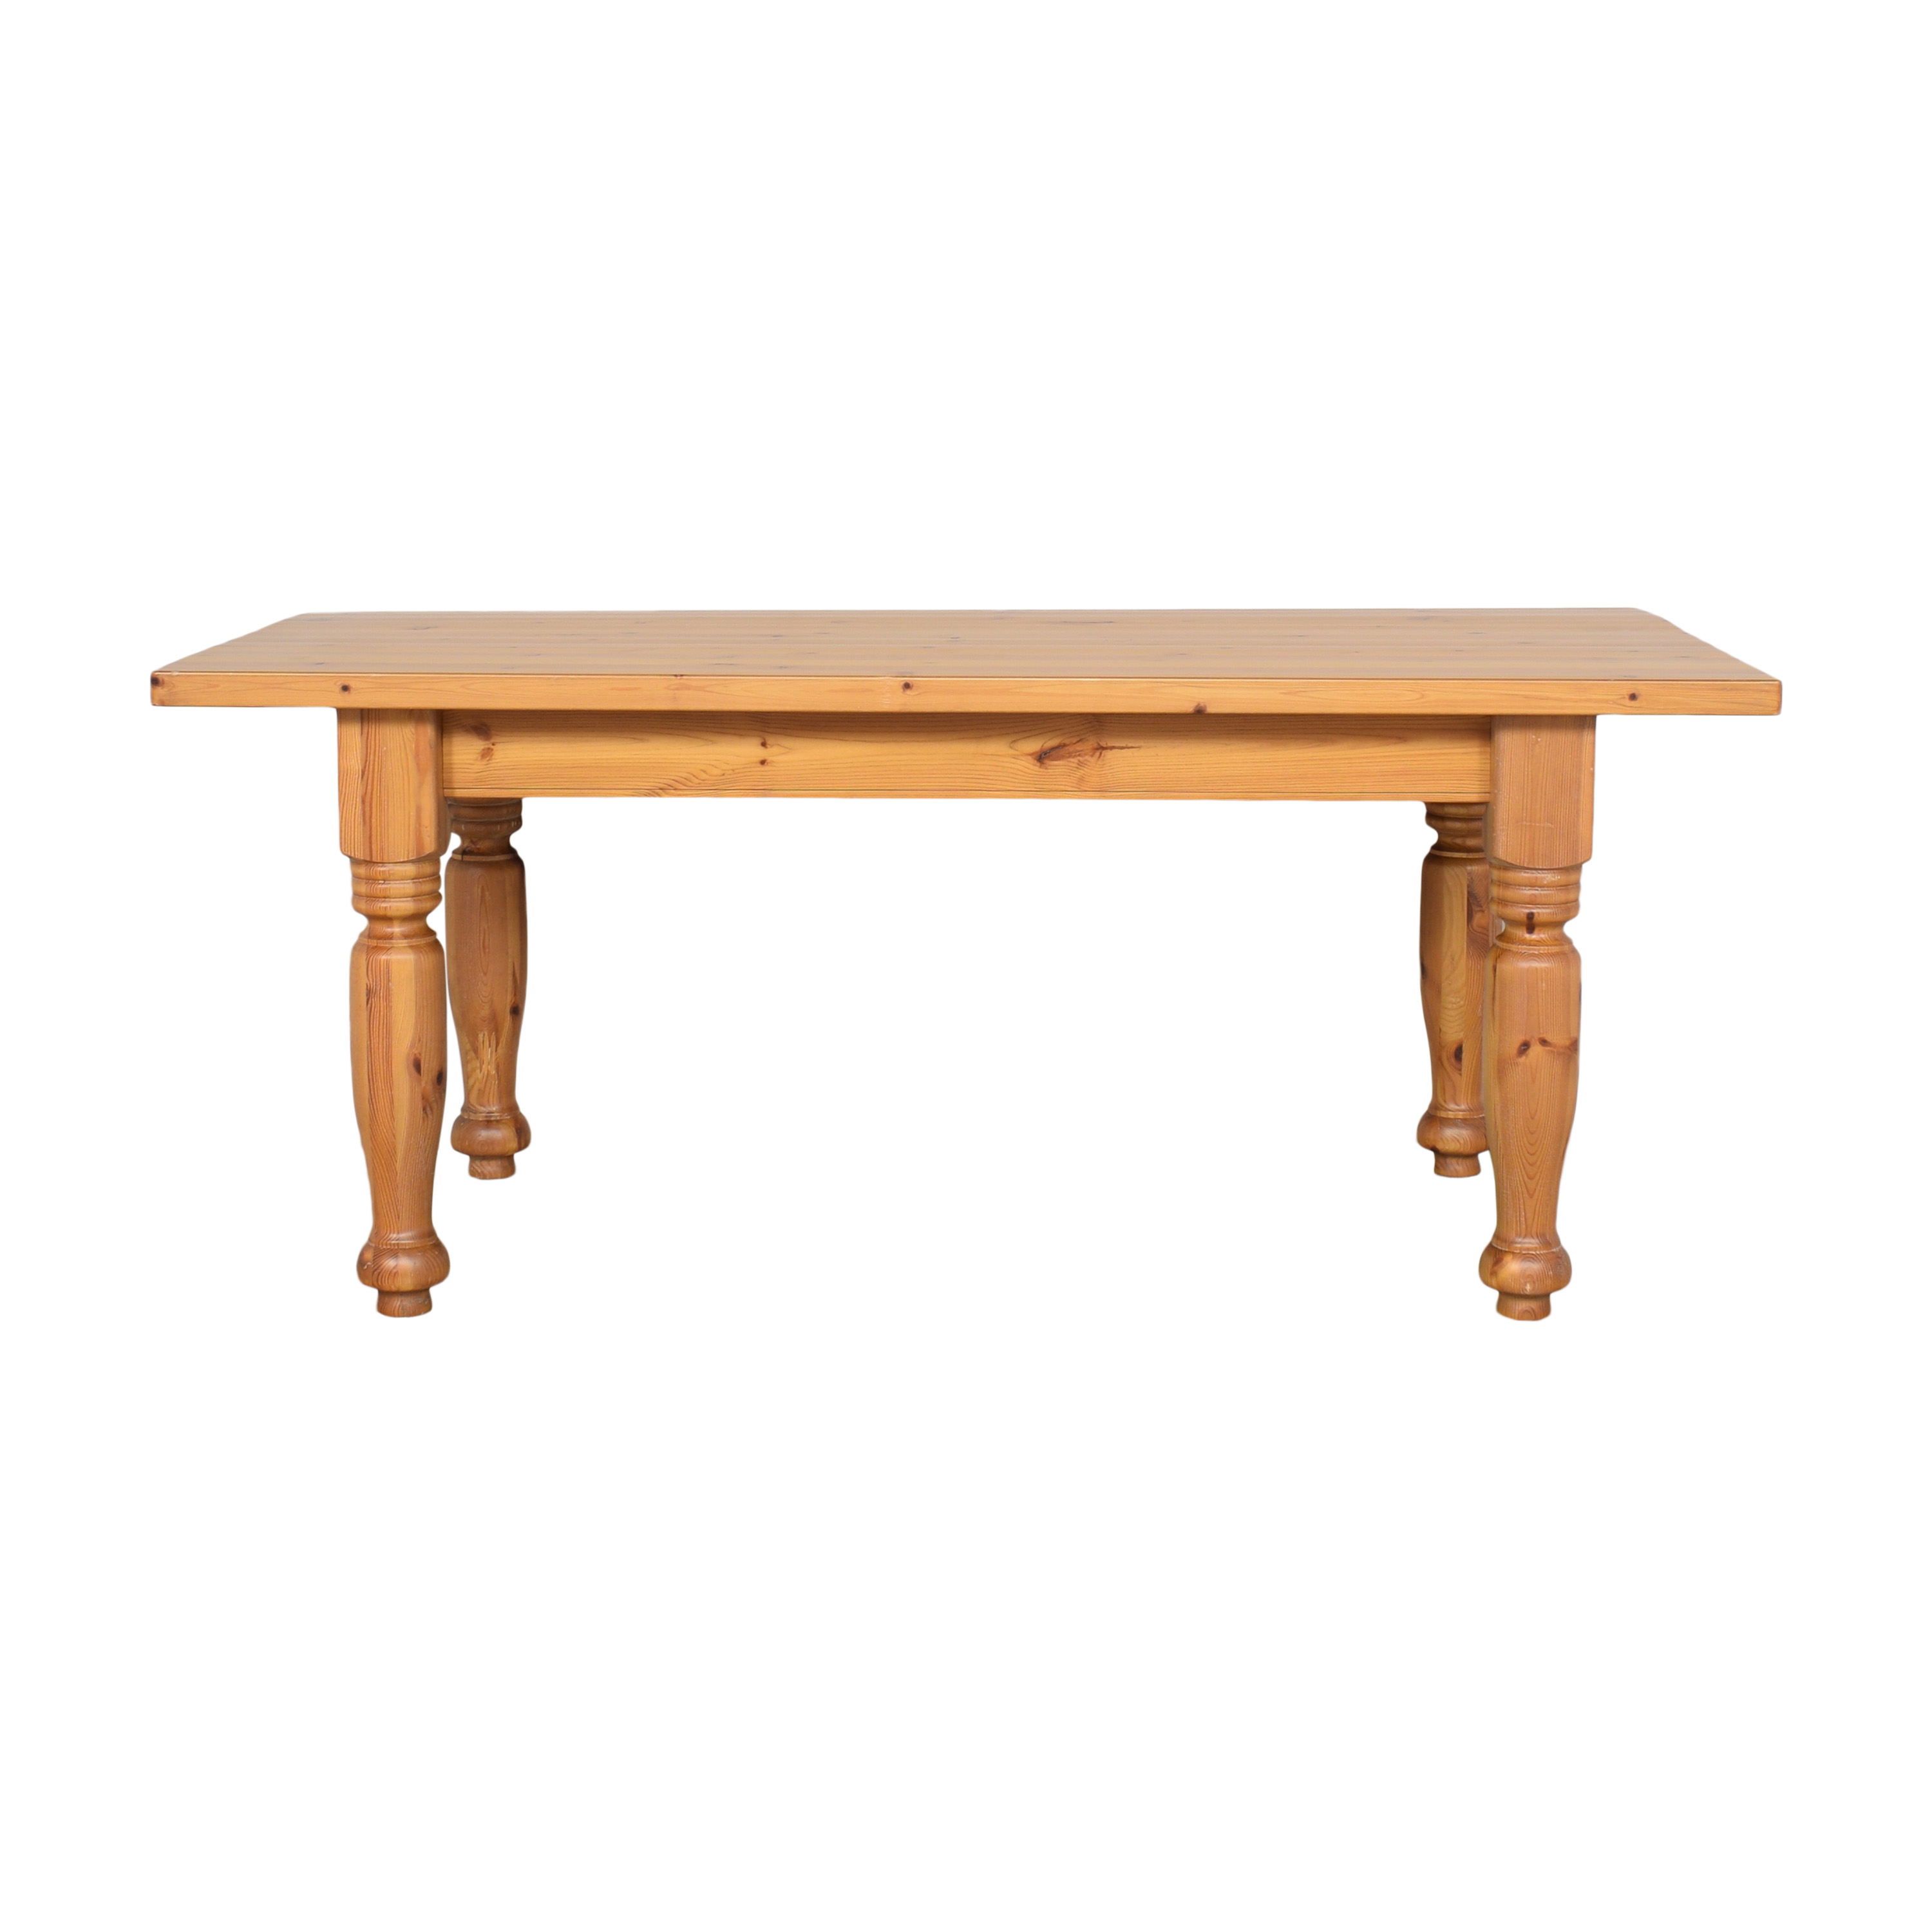 Pottery Barn Pottery Barn Rectangular Dining Table price